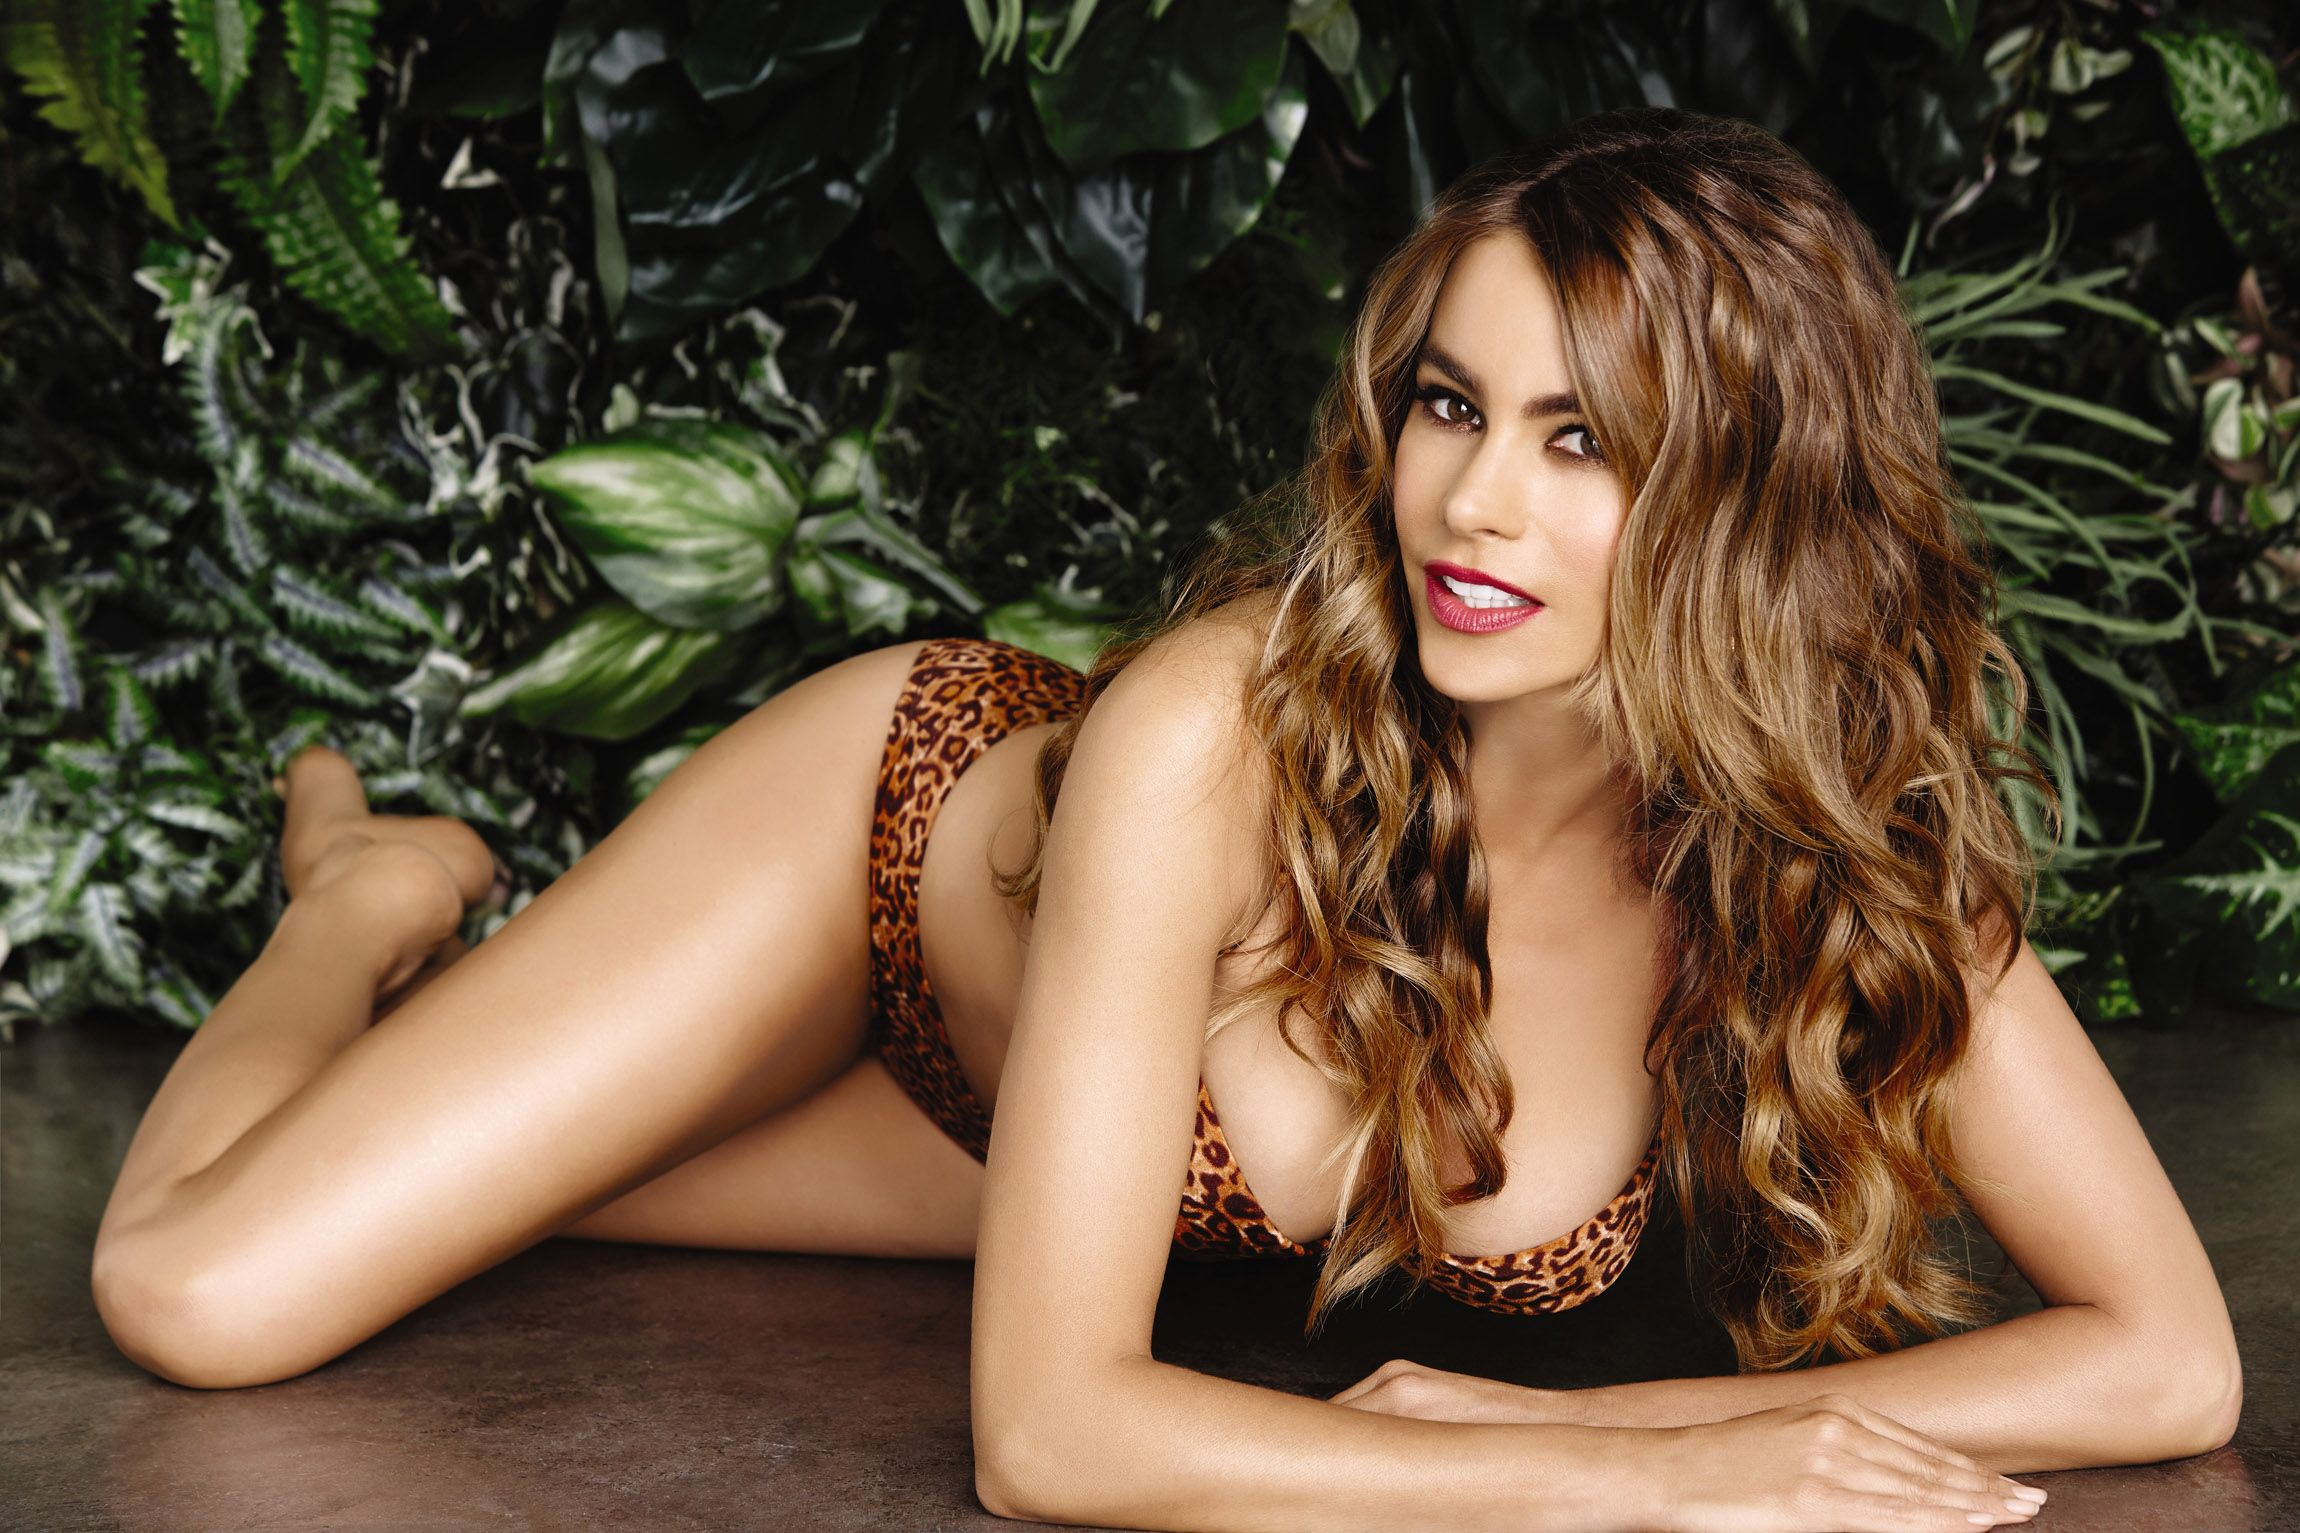 20 Photos That Prove Sofia Vergara is the Hottest Latina in Hollywood